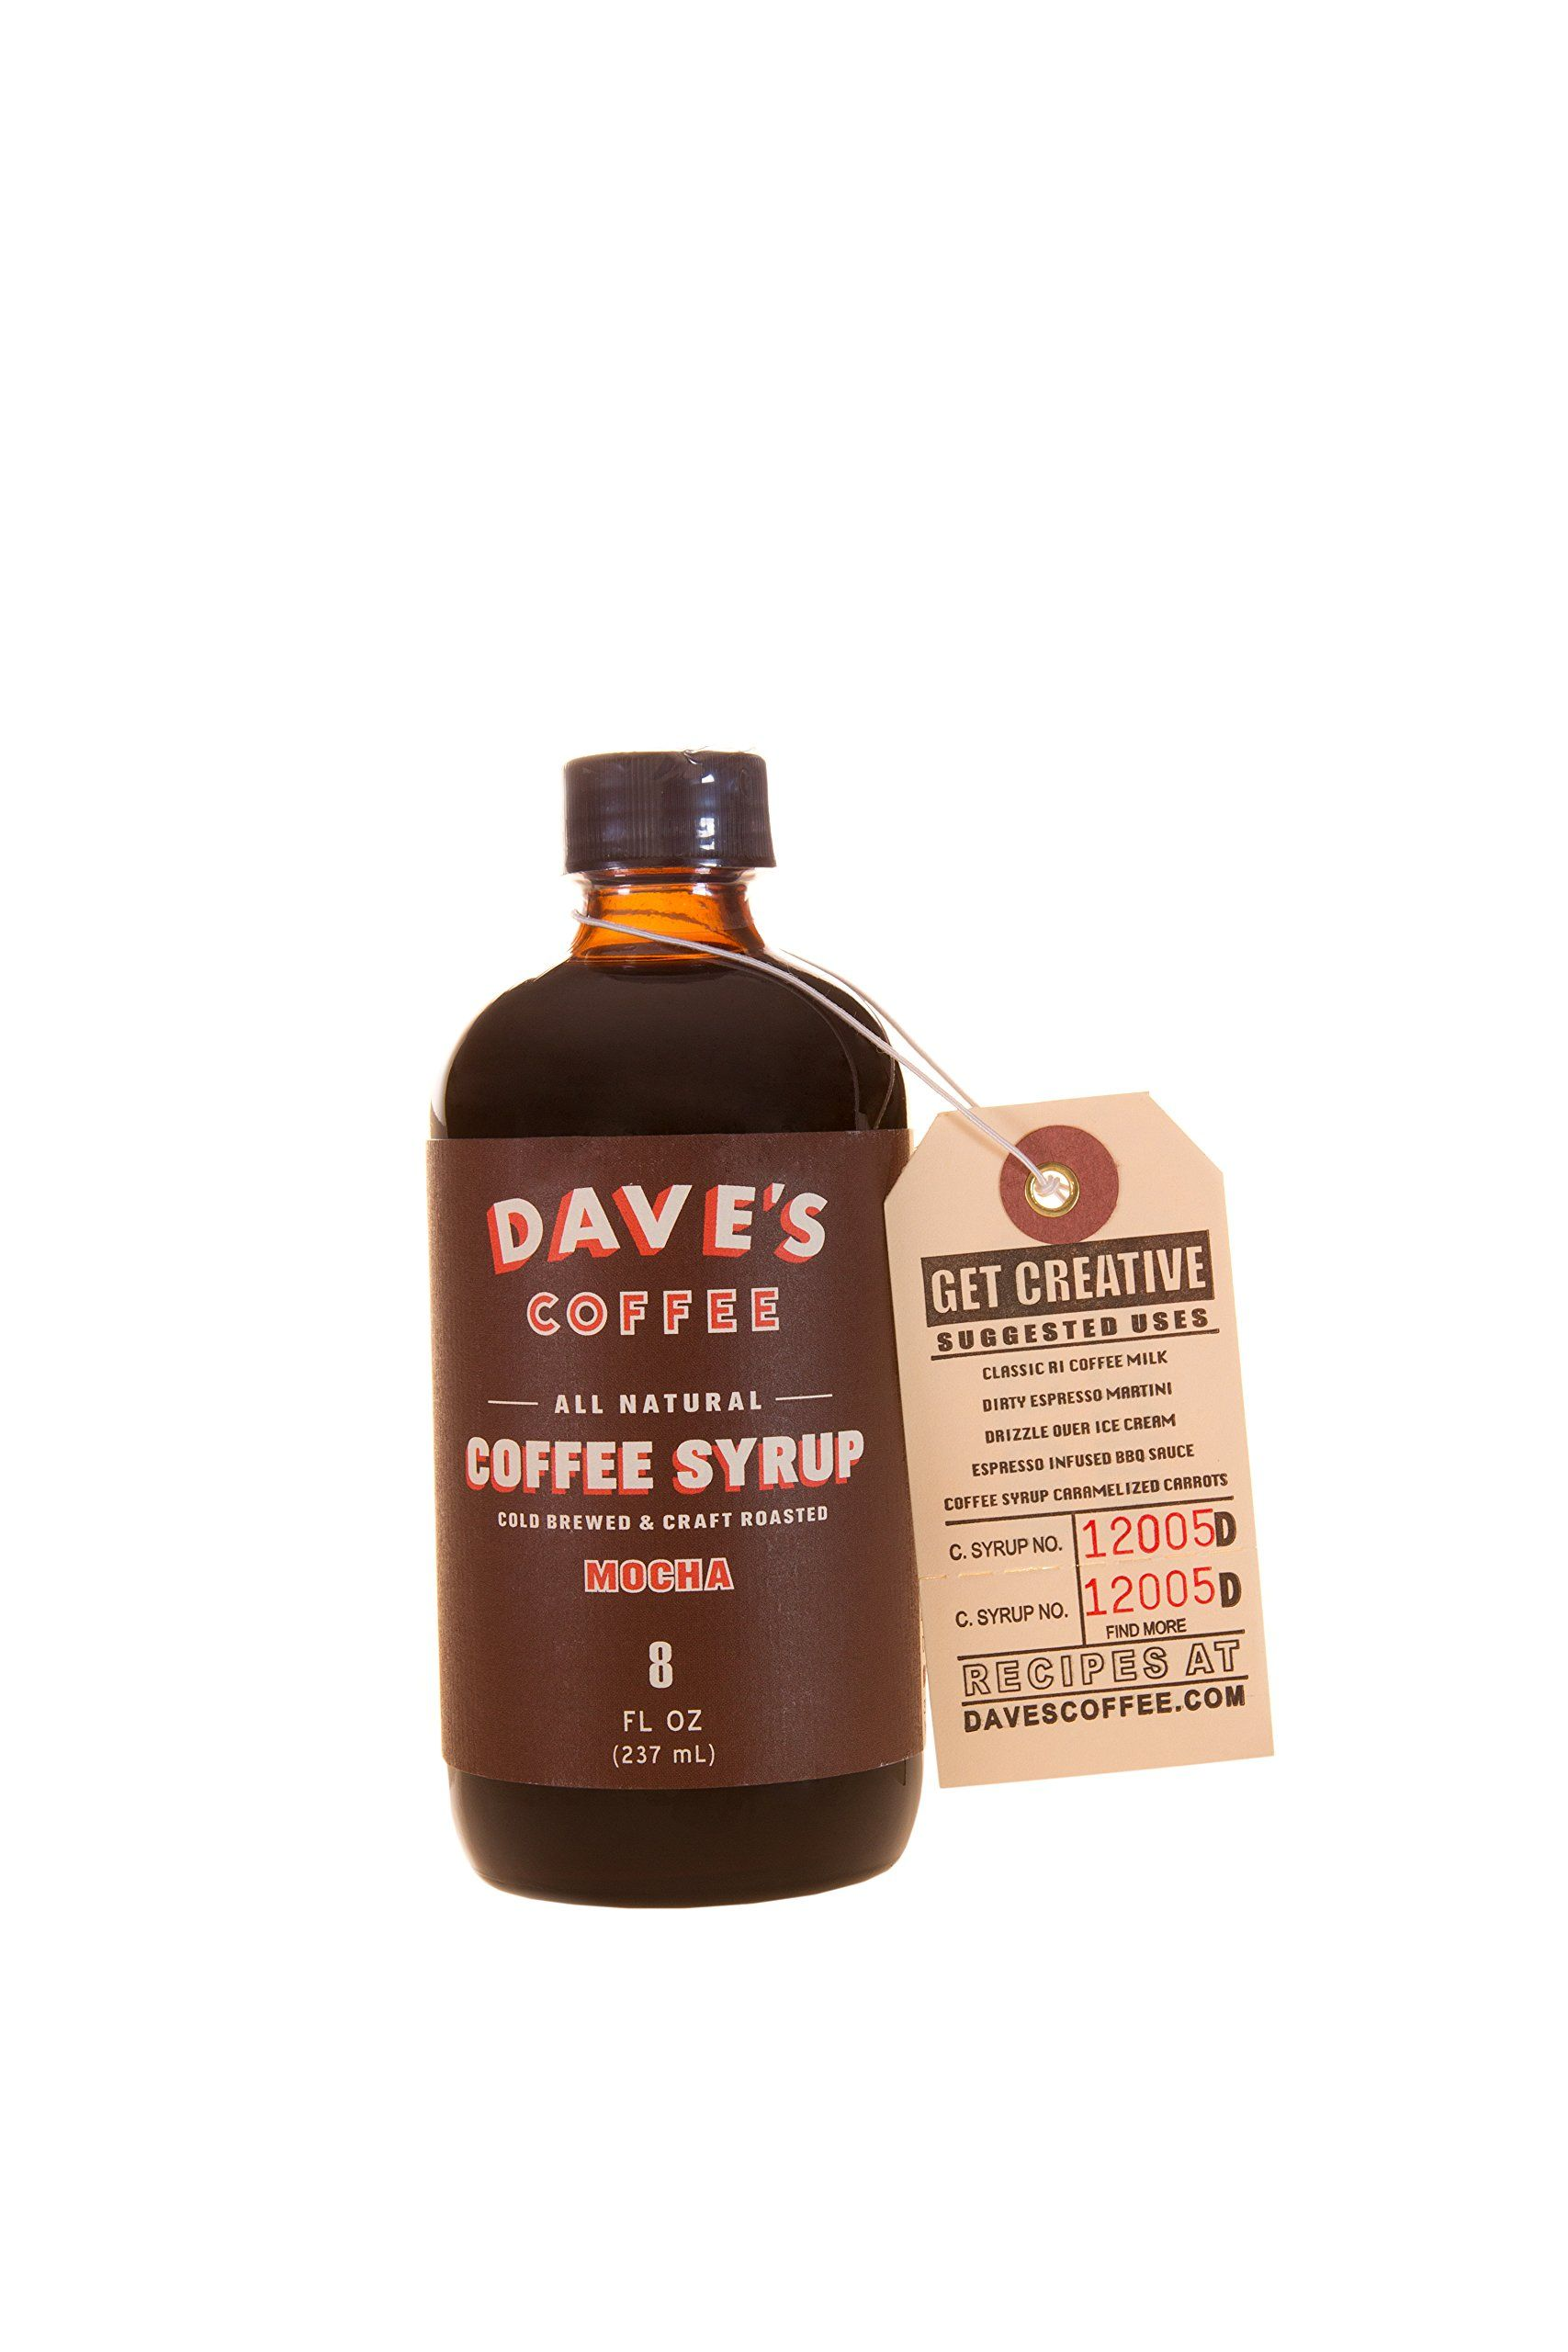 Daves 8 oz mocha all natural cold brewed coffee syrup